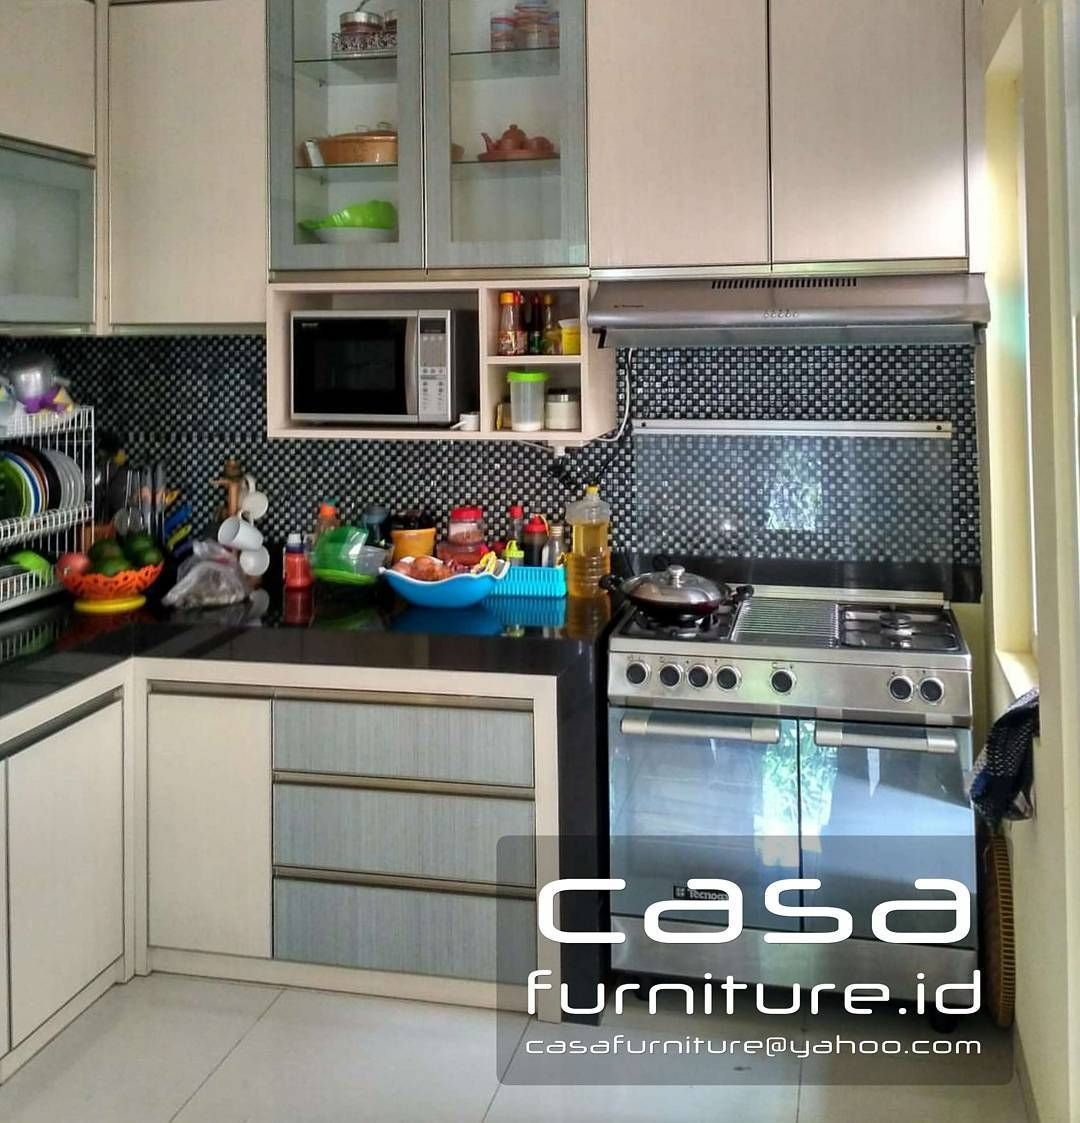 home kitchen furniture. Kitchen Sets, Kitchens, Custom Furniture, Cooking Ware, Kitchen, Cabinets, Home Cucina, Interior Furniture E